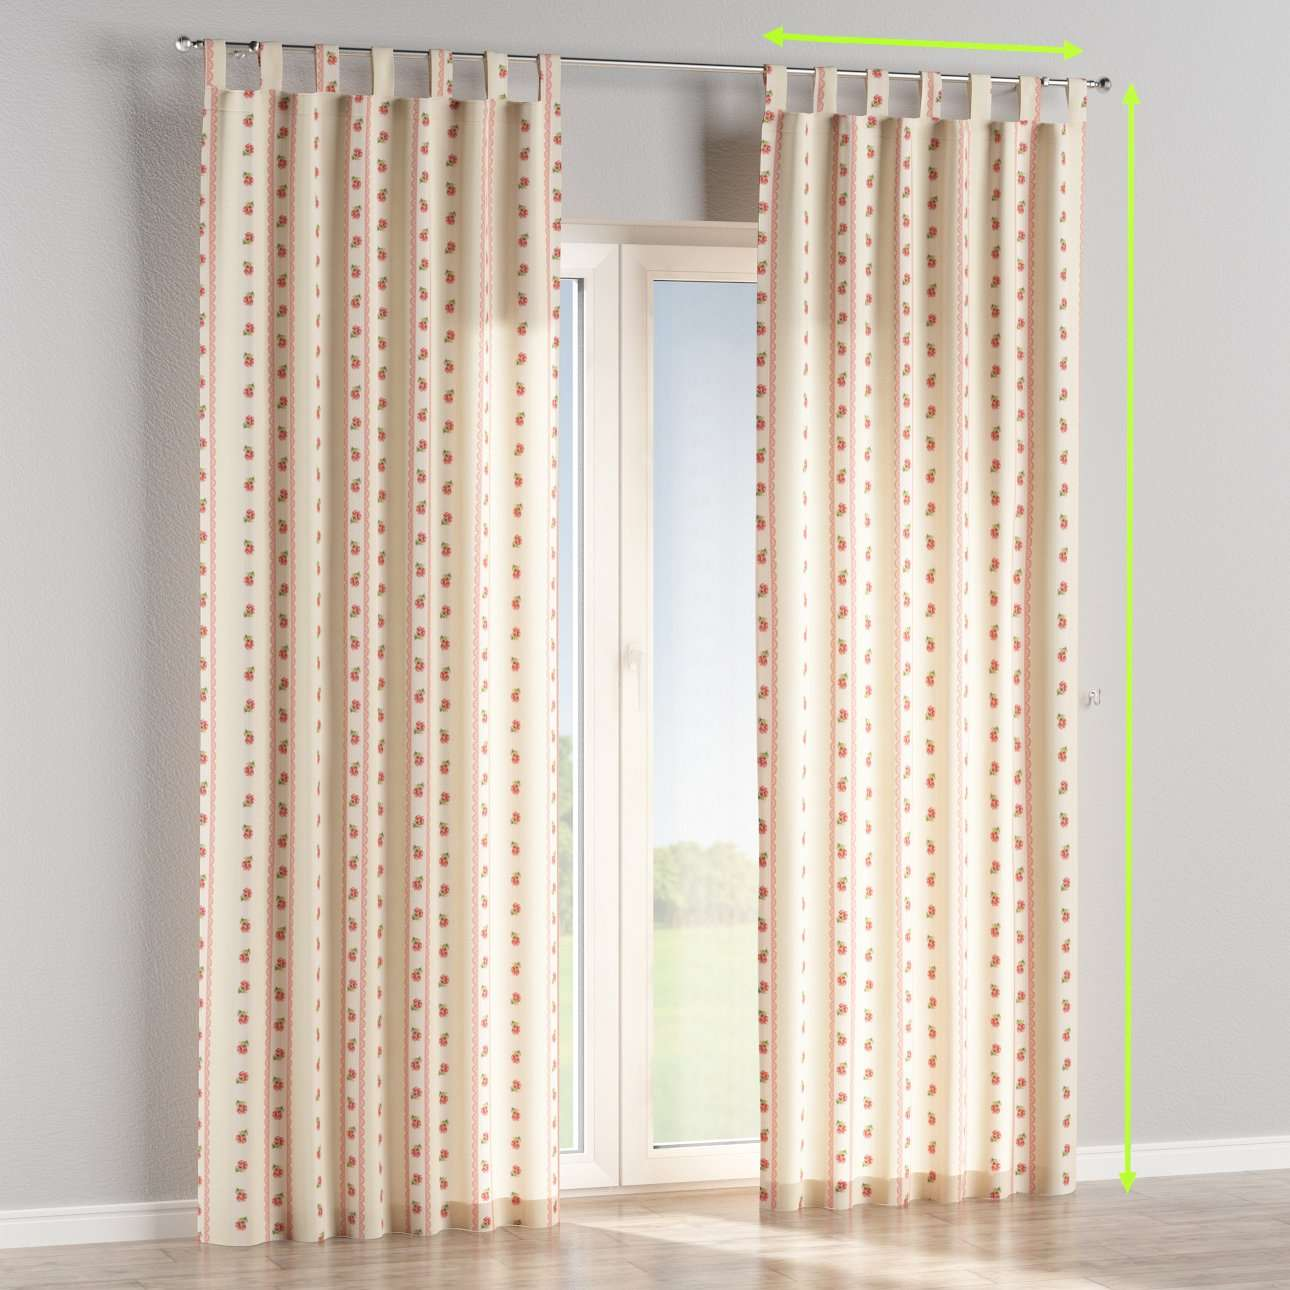 Tab top lined curtains in collection Ashley, fabric: 137-48